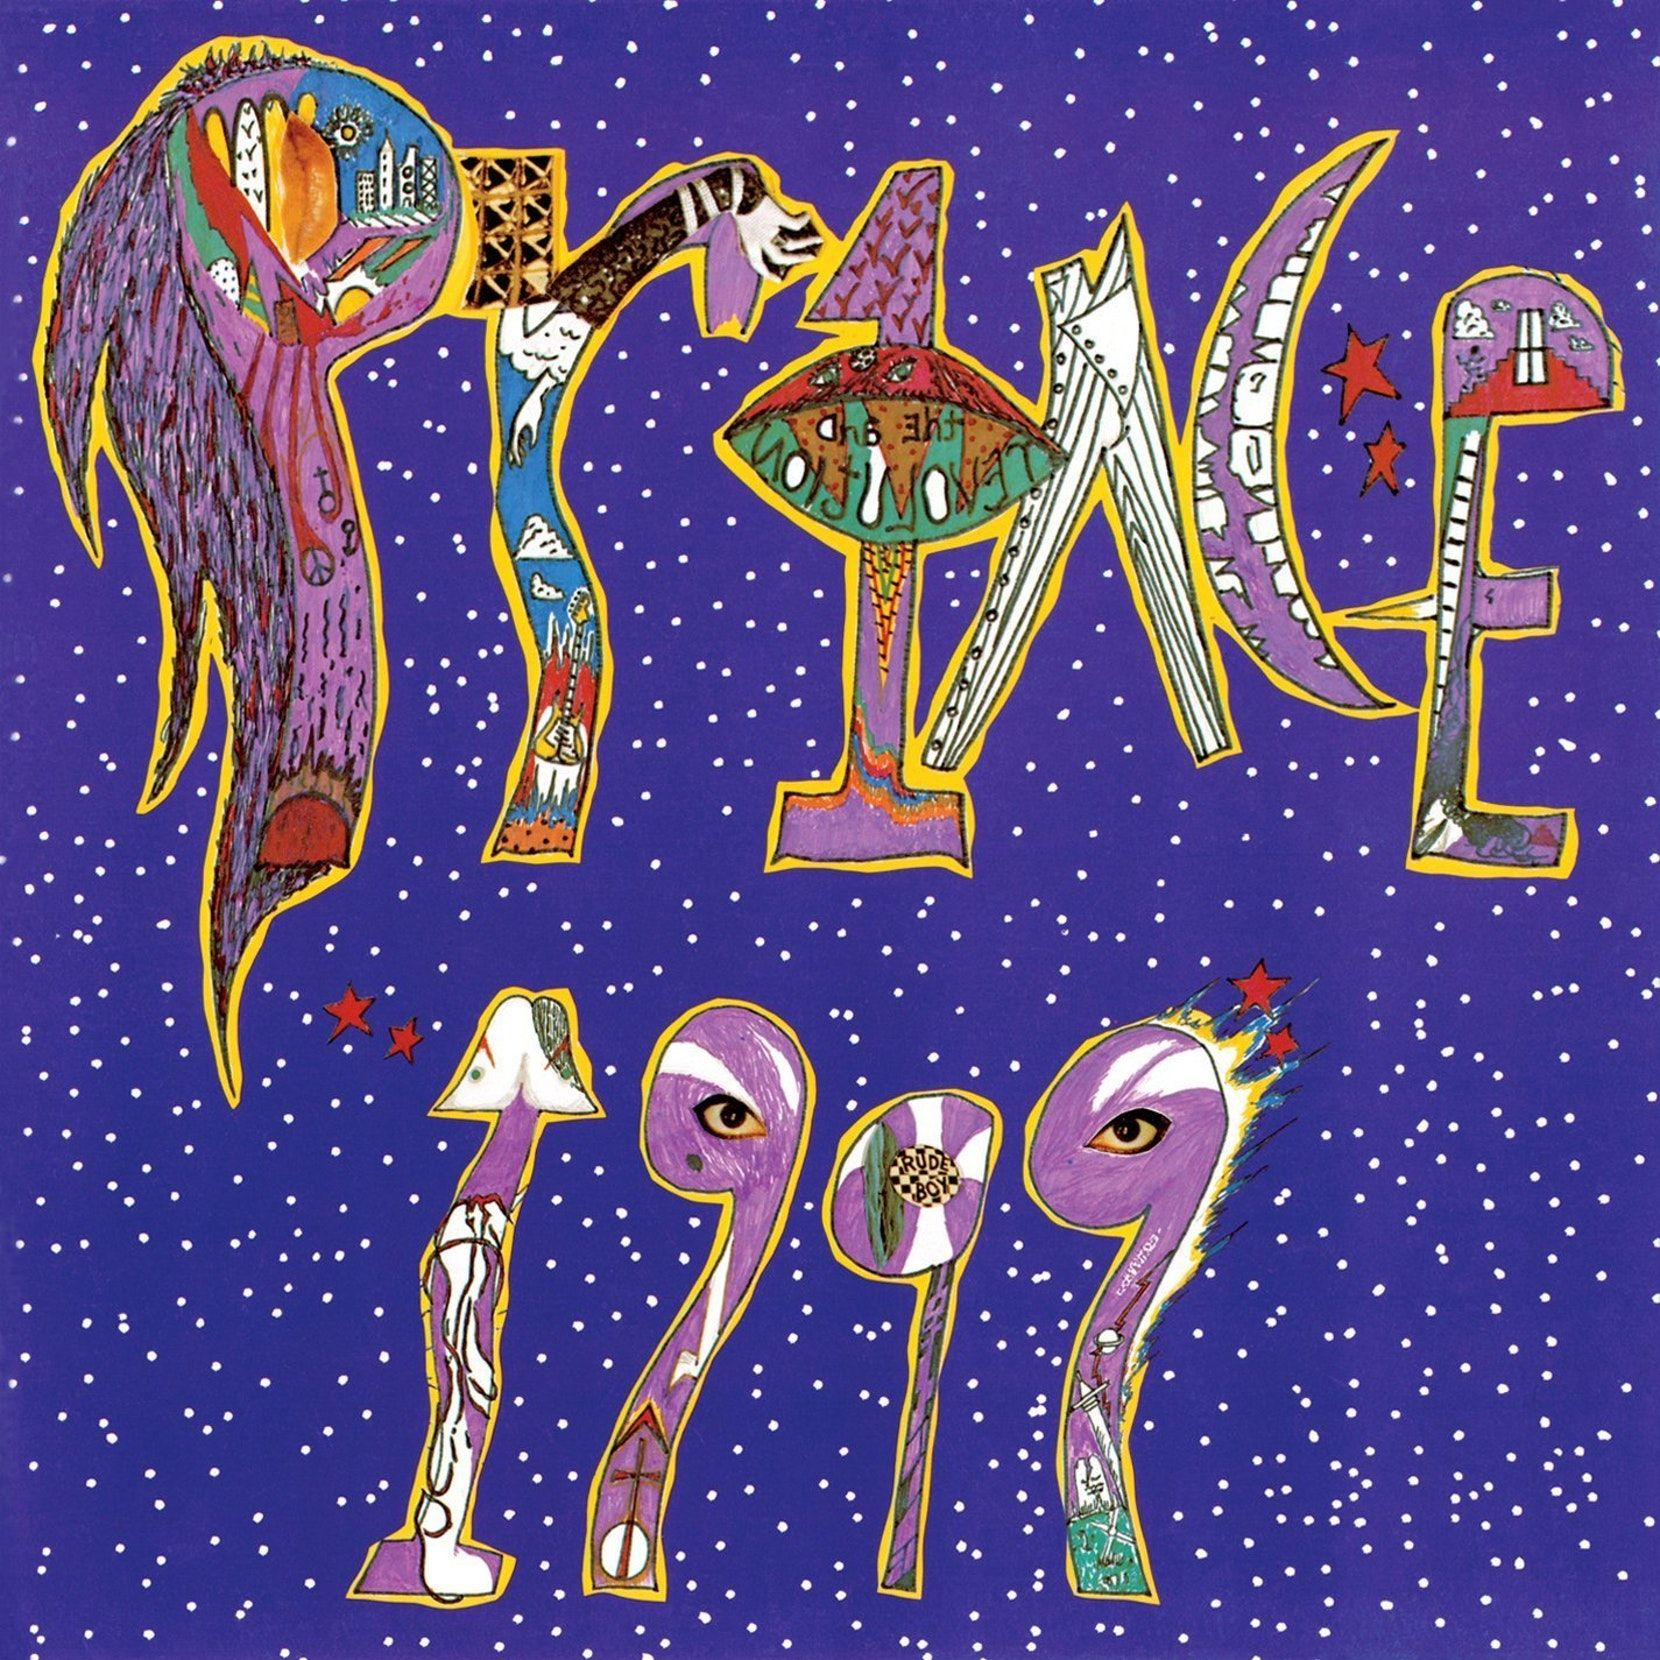 We Cover The 10 Best Funk Albums To Own On Vinyl Prince Album Cover Album Covers Little Red Corvette